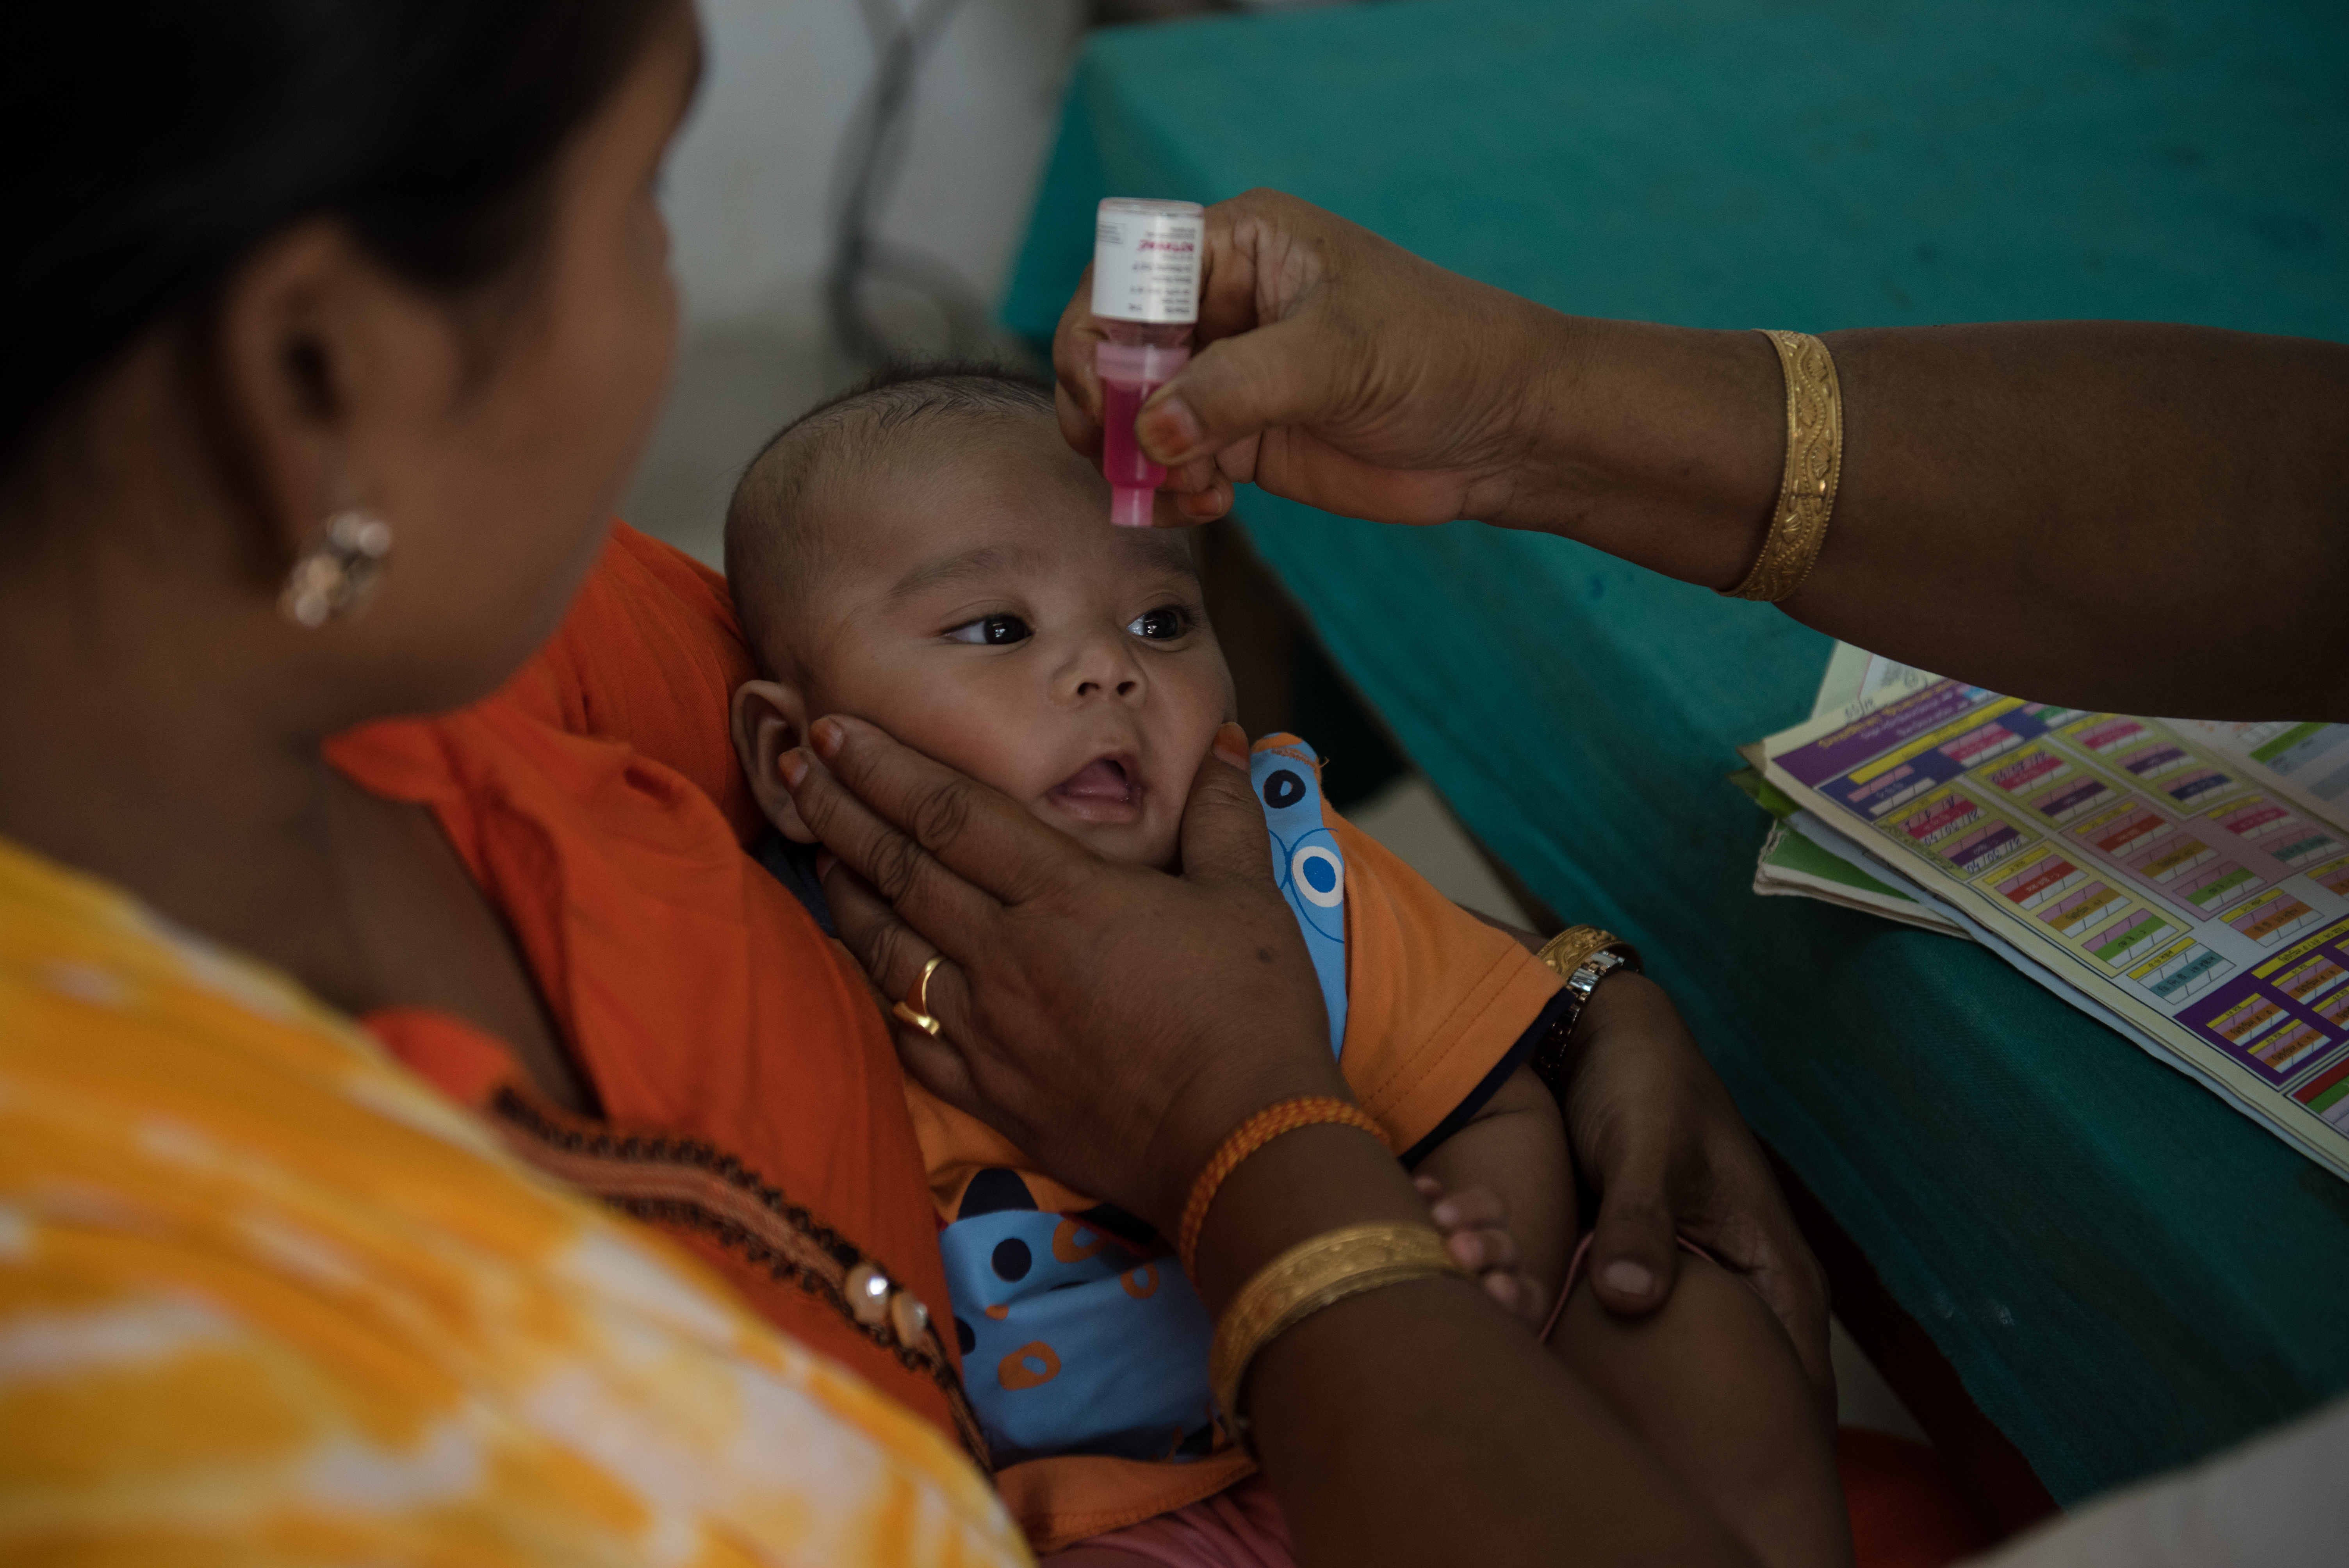 A baby in India receives ROTAVAC rotavirus vaccine.